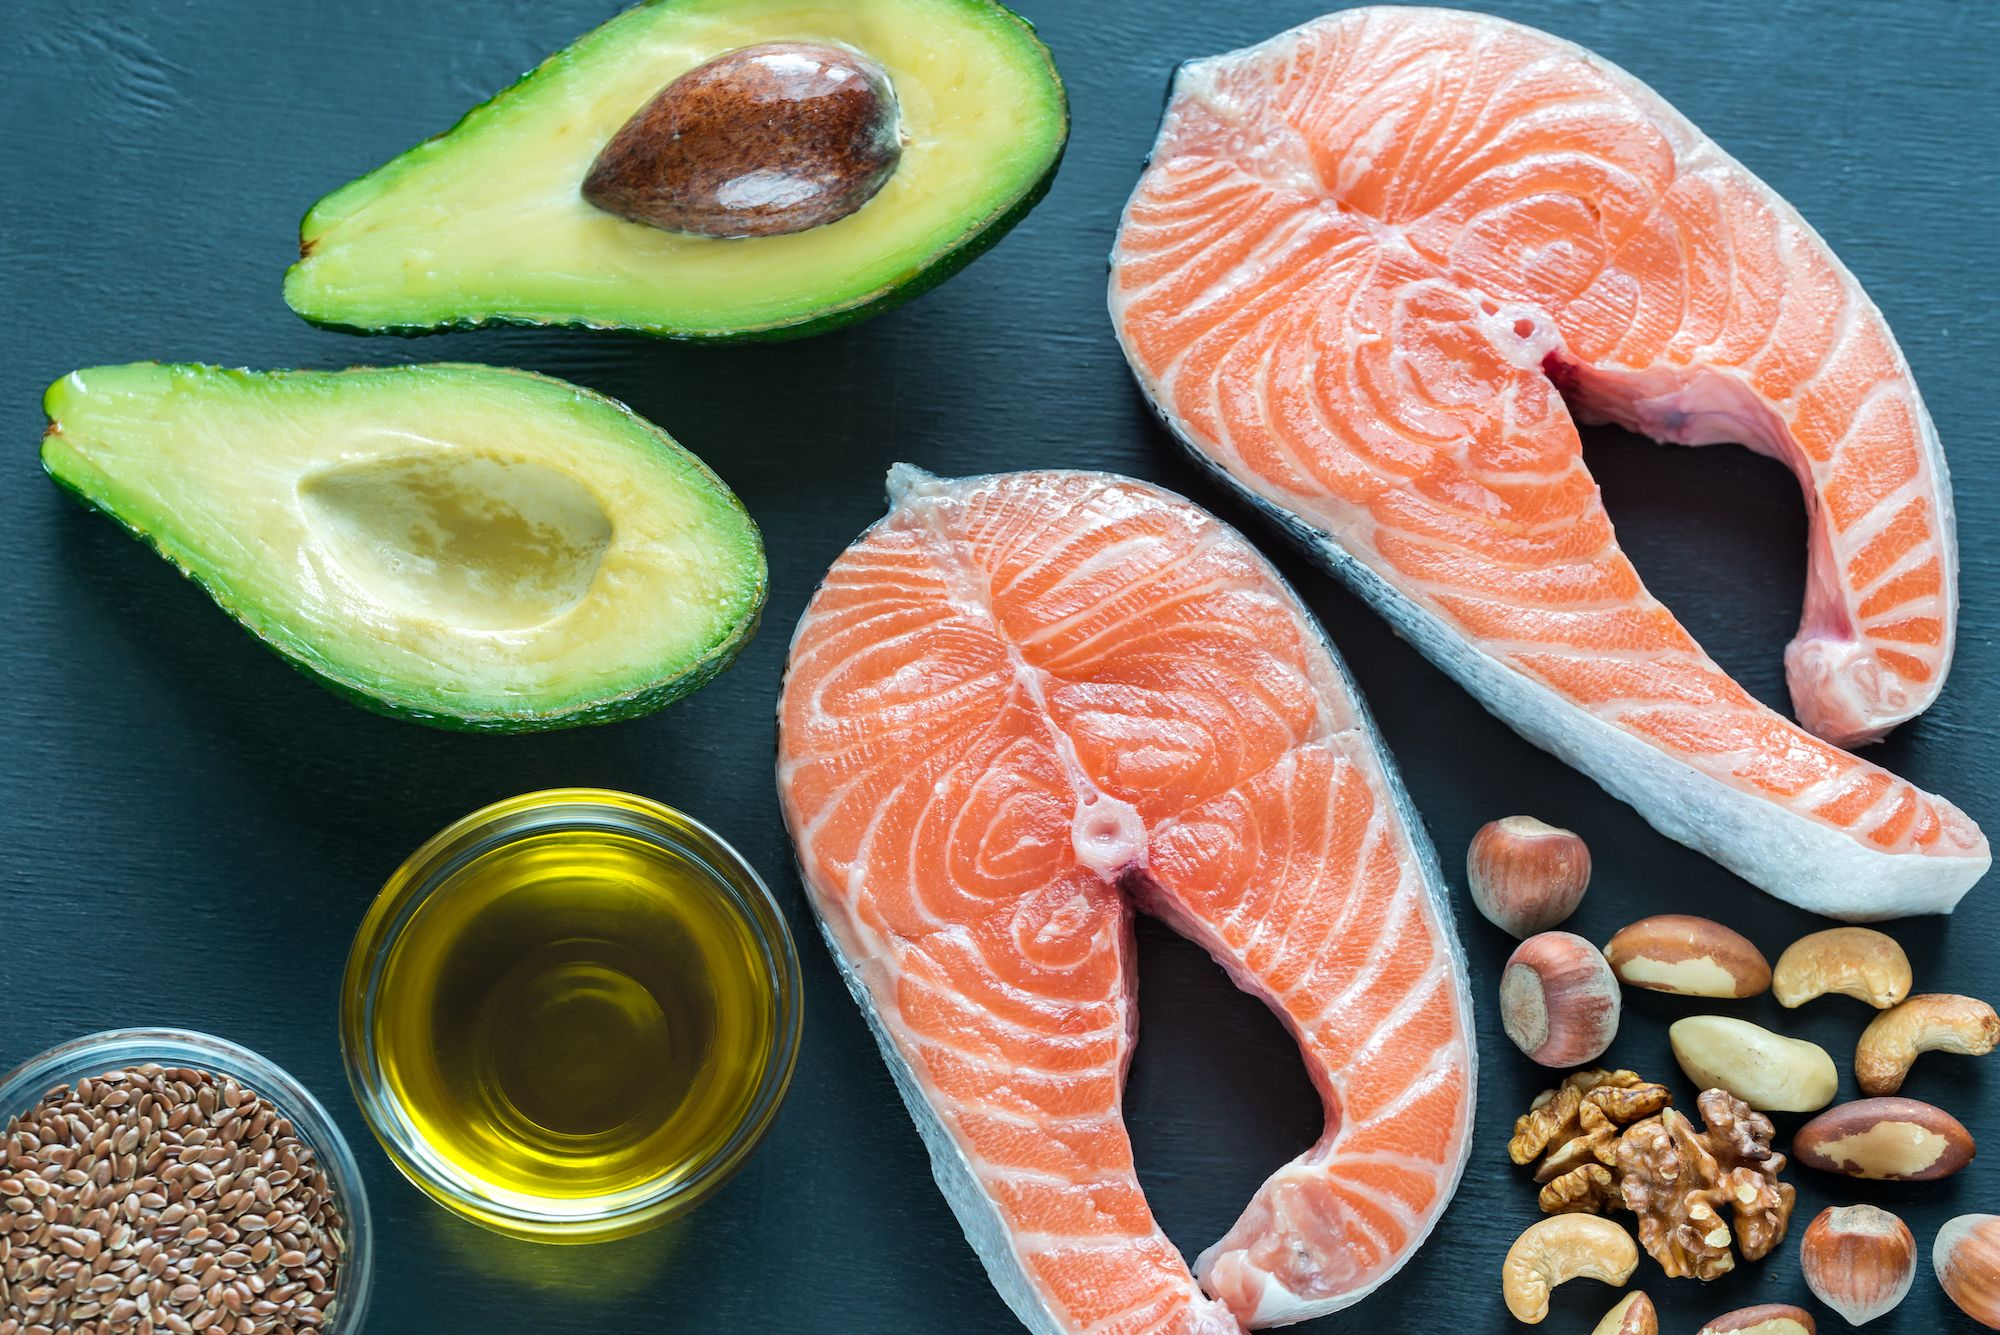 foods with omega-3 fats